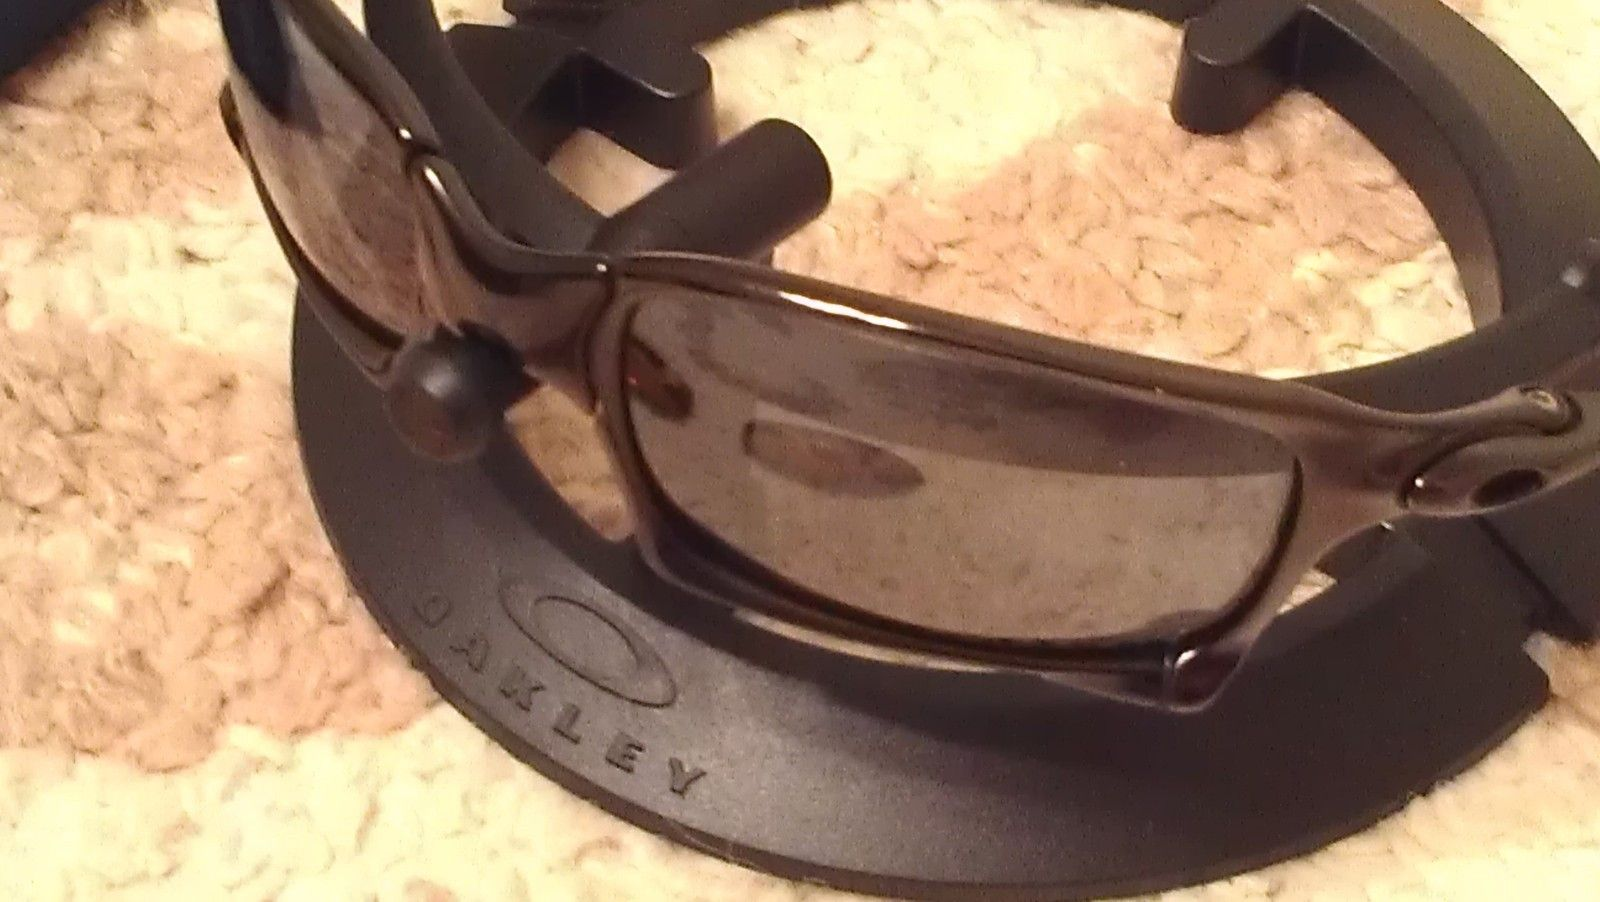 XS Polished Carbon/BIP + Brand New Oakley Eyepatch 2 - $325 OBO -- Make An Offer..Must Go - oqok.jpg